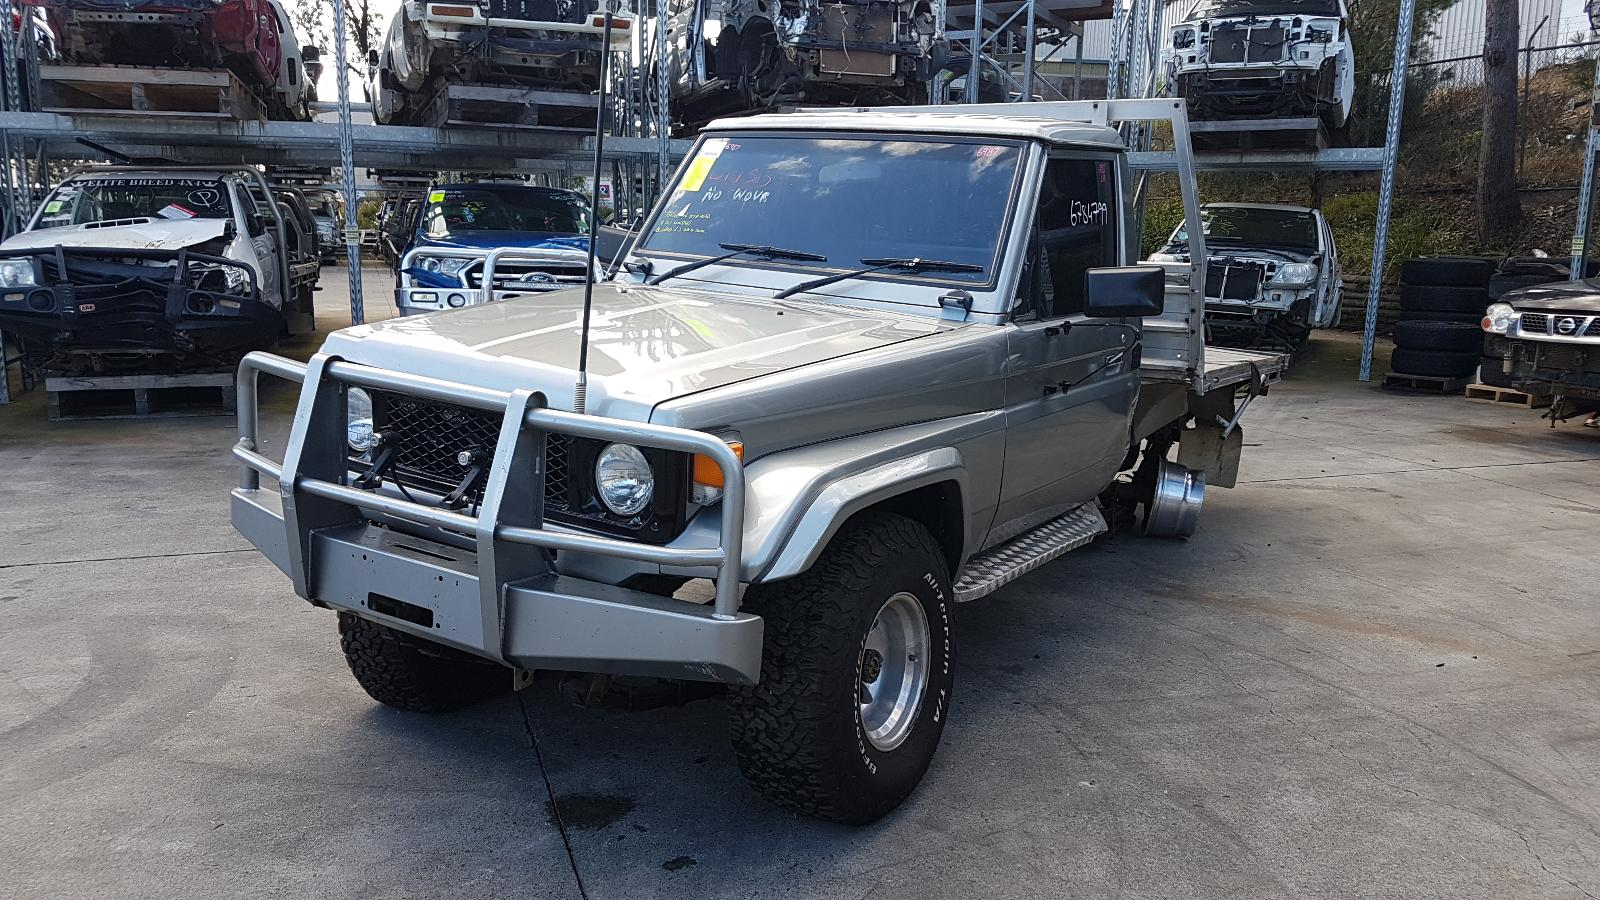 Image for a Toyota Landcruiser 1988 2 Door Suv